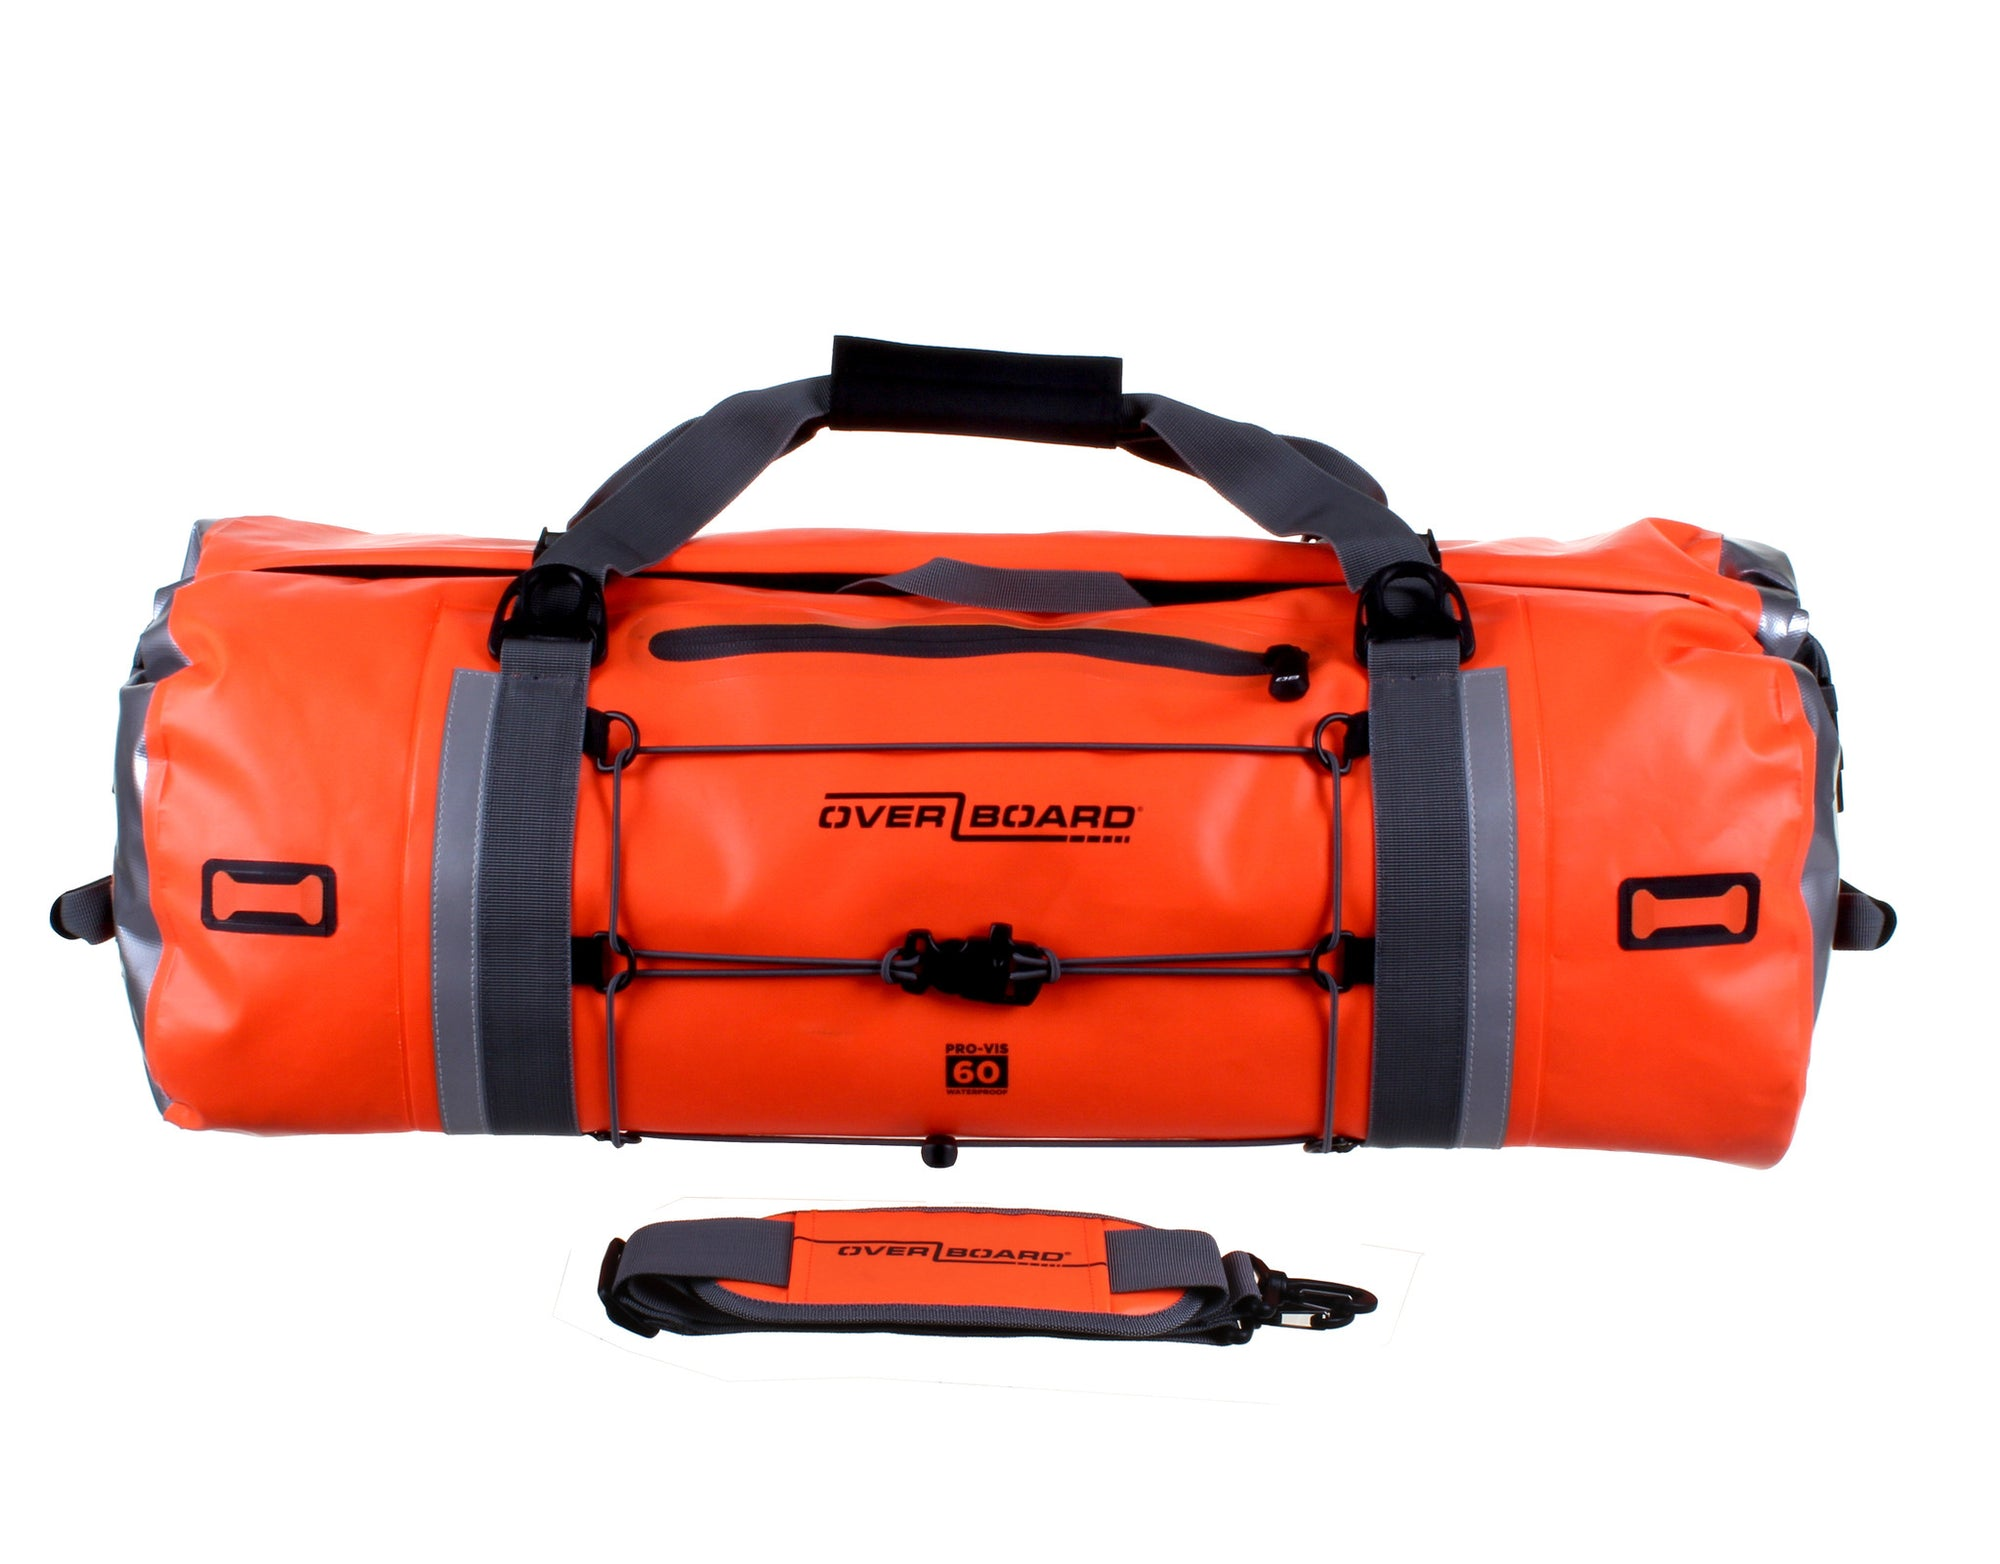 Shop for OverBoard at Pro-Vis Waterproof Duffel Bag - 60 Litre at Gearaholic.com.sg